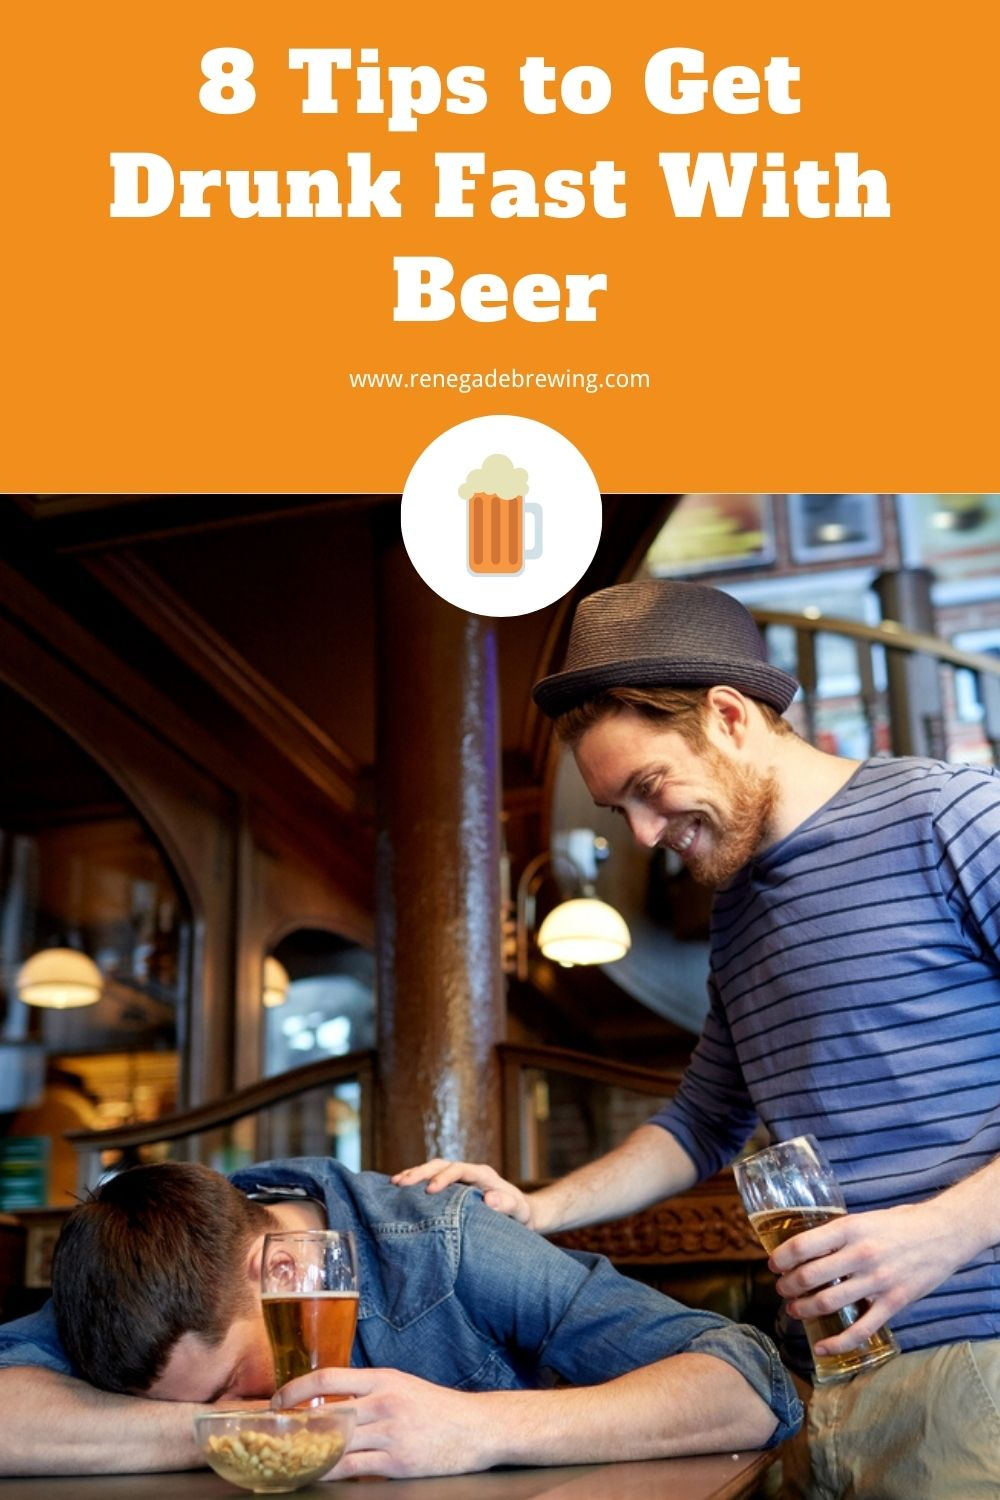 8 Tips to Get Drunk Fast With Beer 2